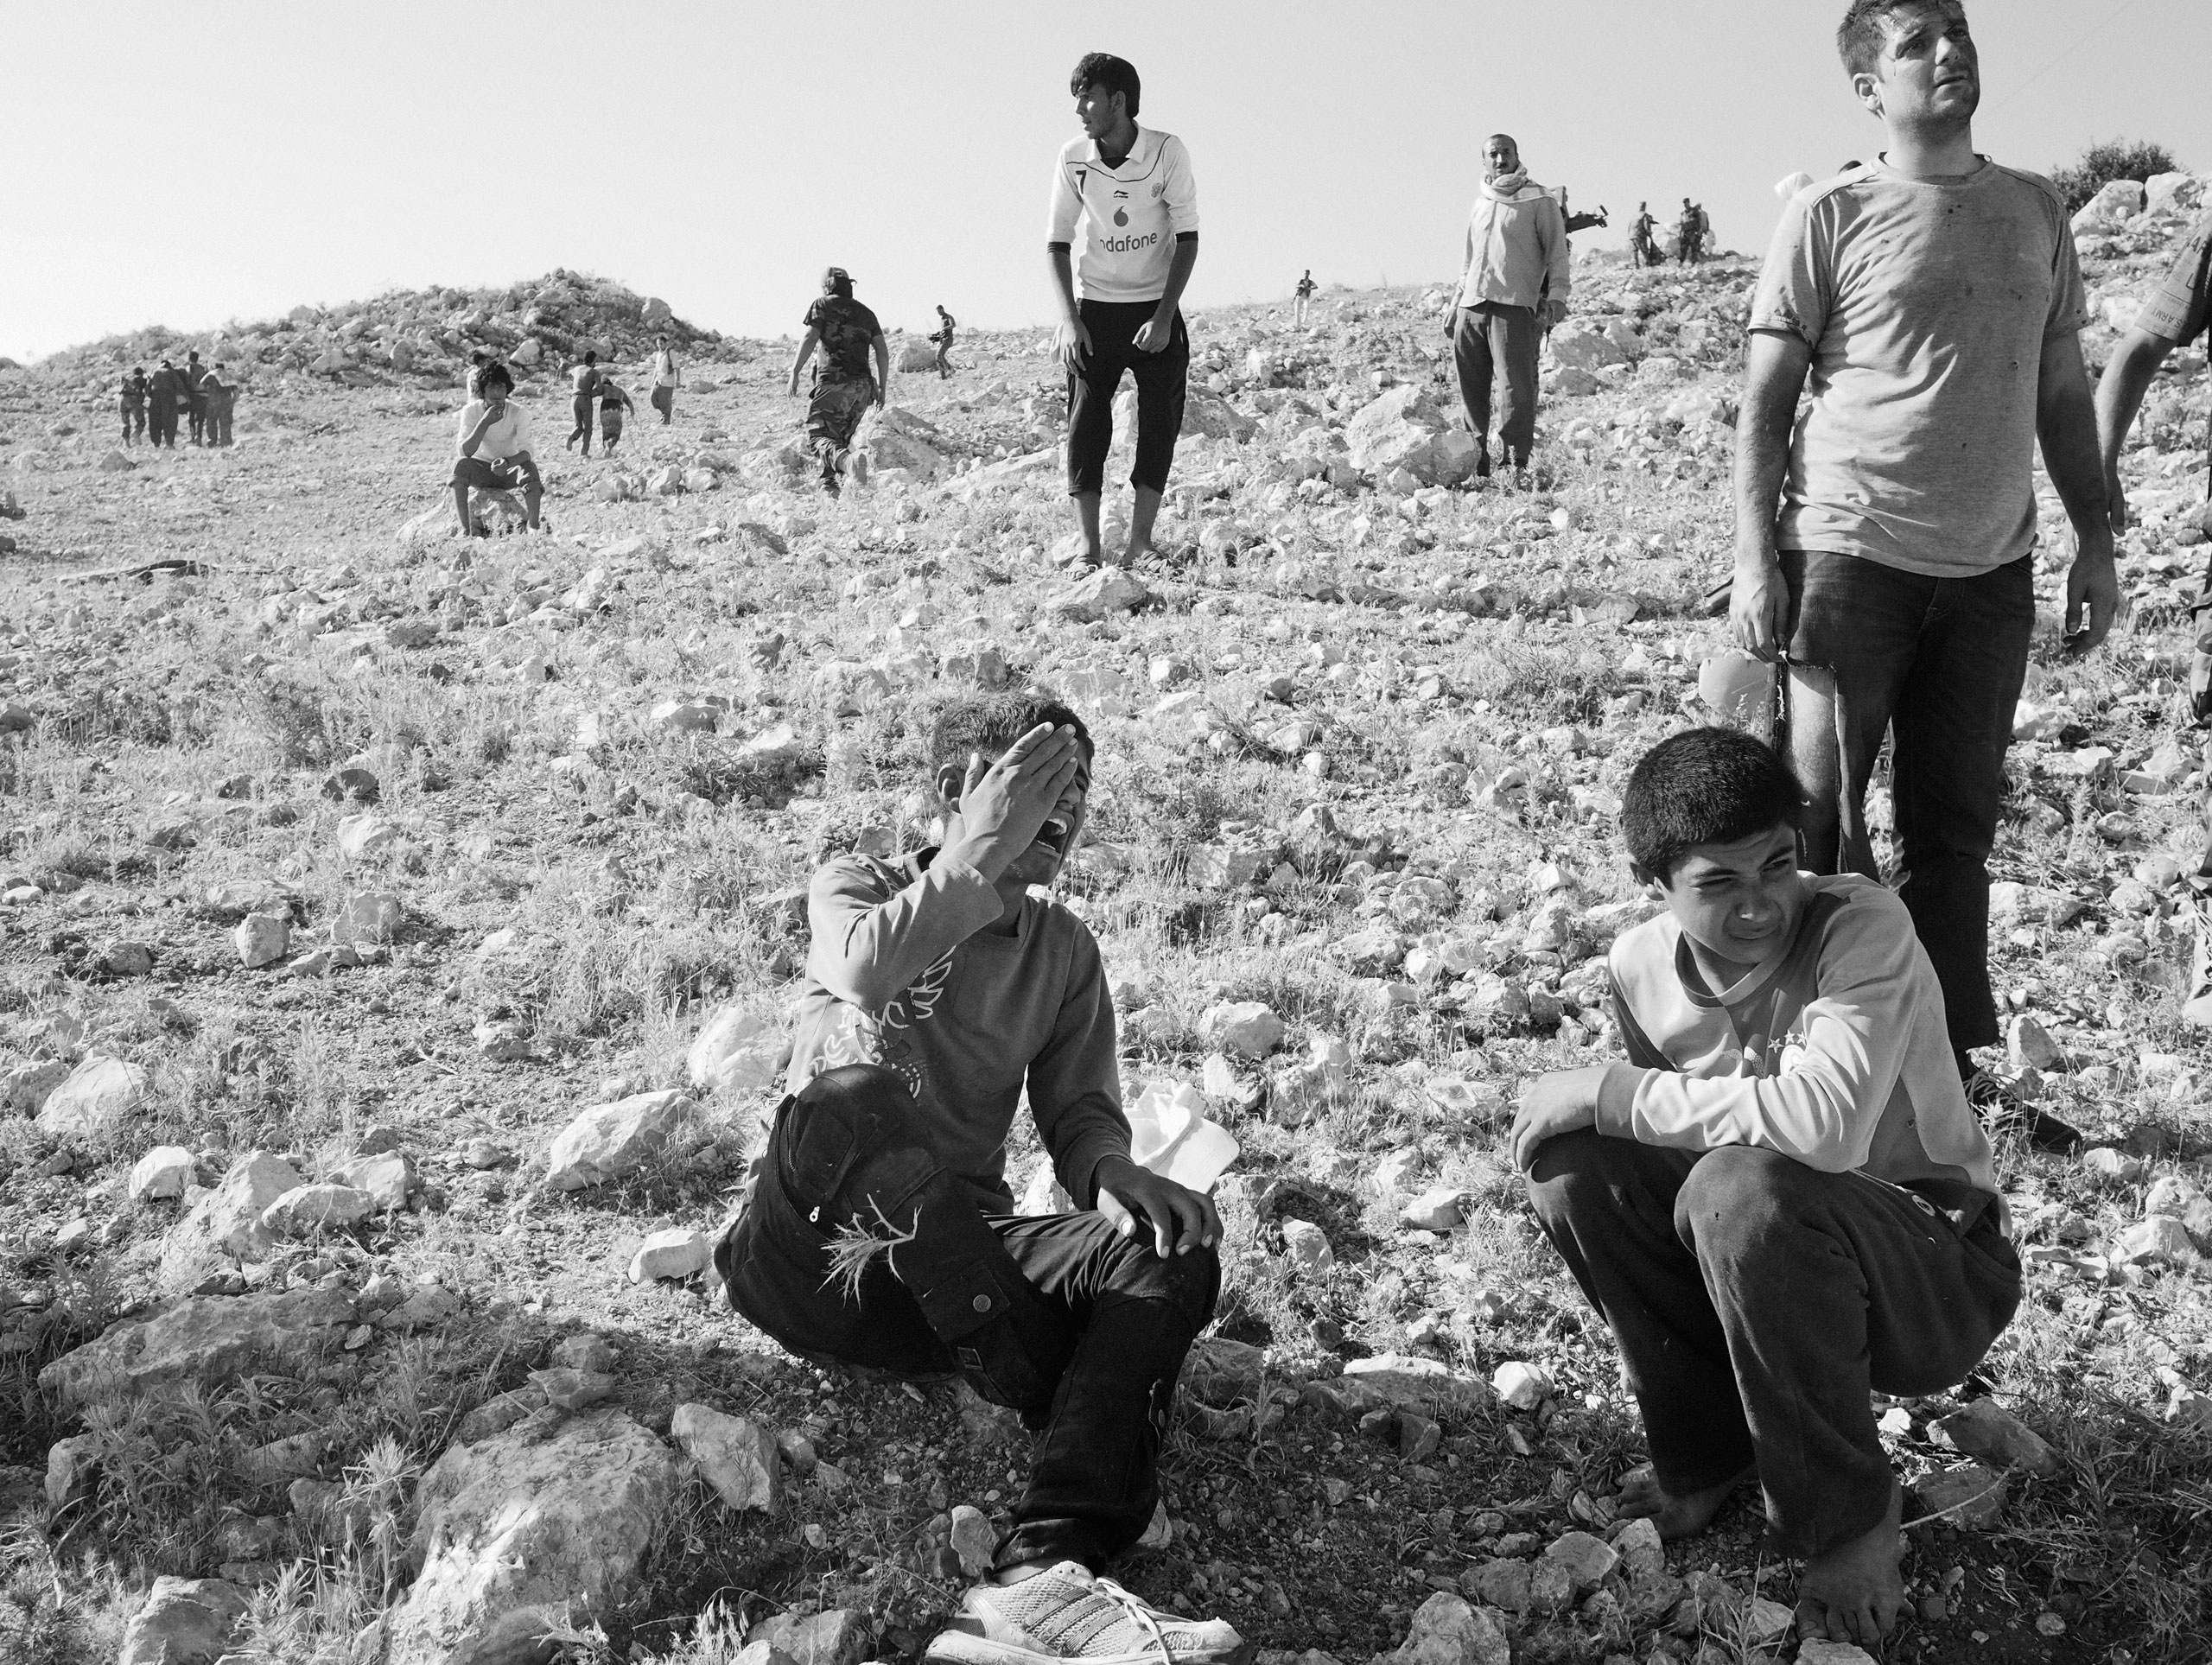 A boy whose mother was onboard the helicopter cries as he does not know her fate. She survived. Sinjar Mountains, Iraq. Aug. 12, 2014.